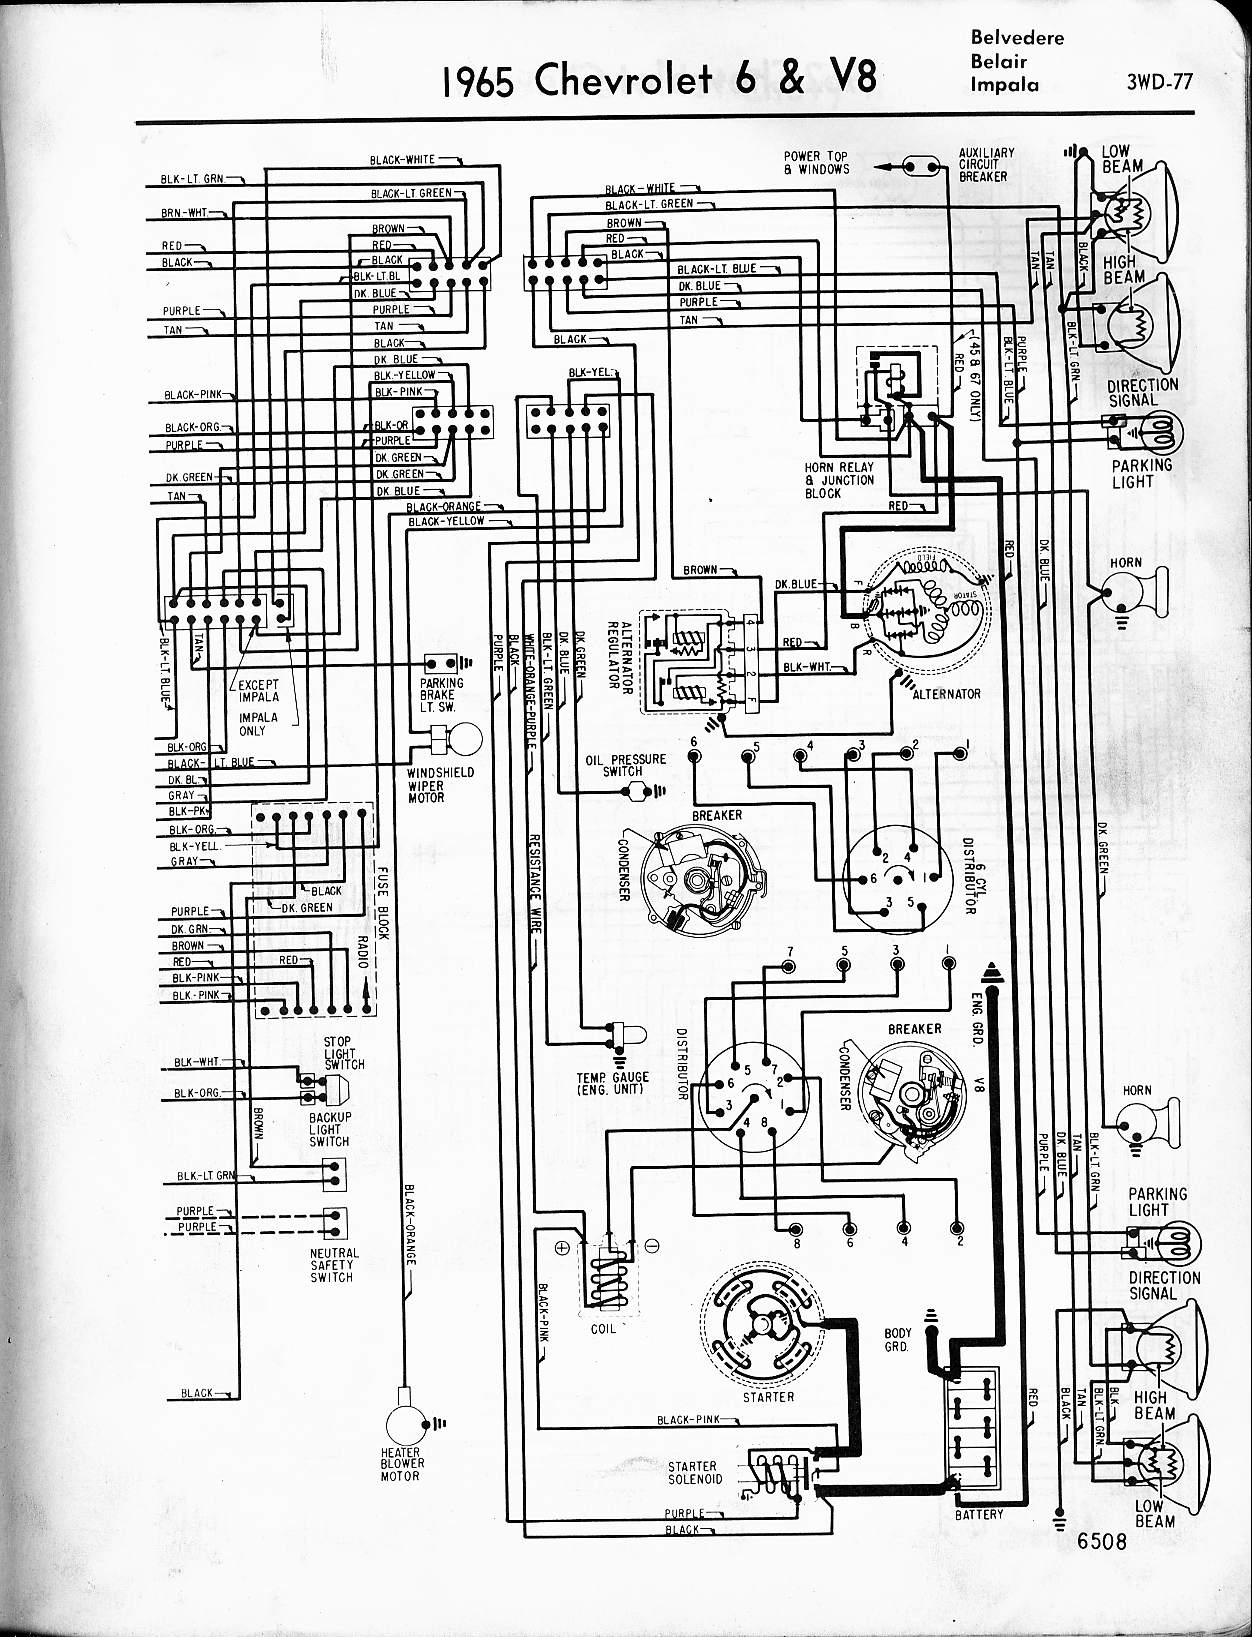 66 chevelle wiring diagram 66 chevelle steering column wiring 1999 chevy truck wiring diagram 66 chevelle wiring schematic wiring diagram \\u2022 66 chevelle alternator wiring diagram 1964 chevelle wiring